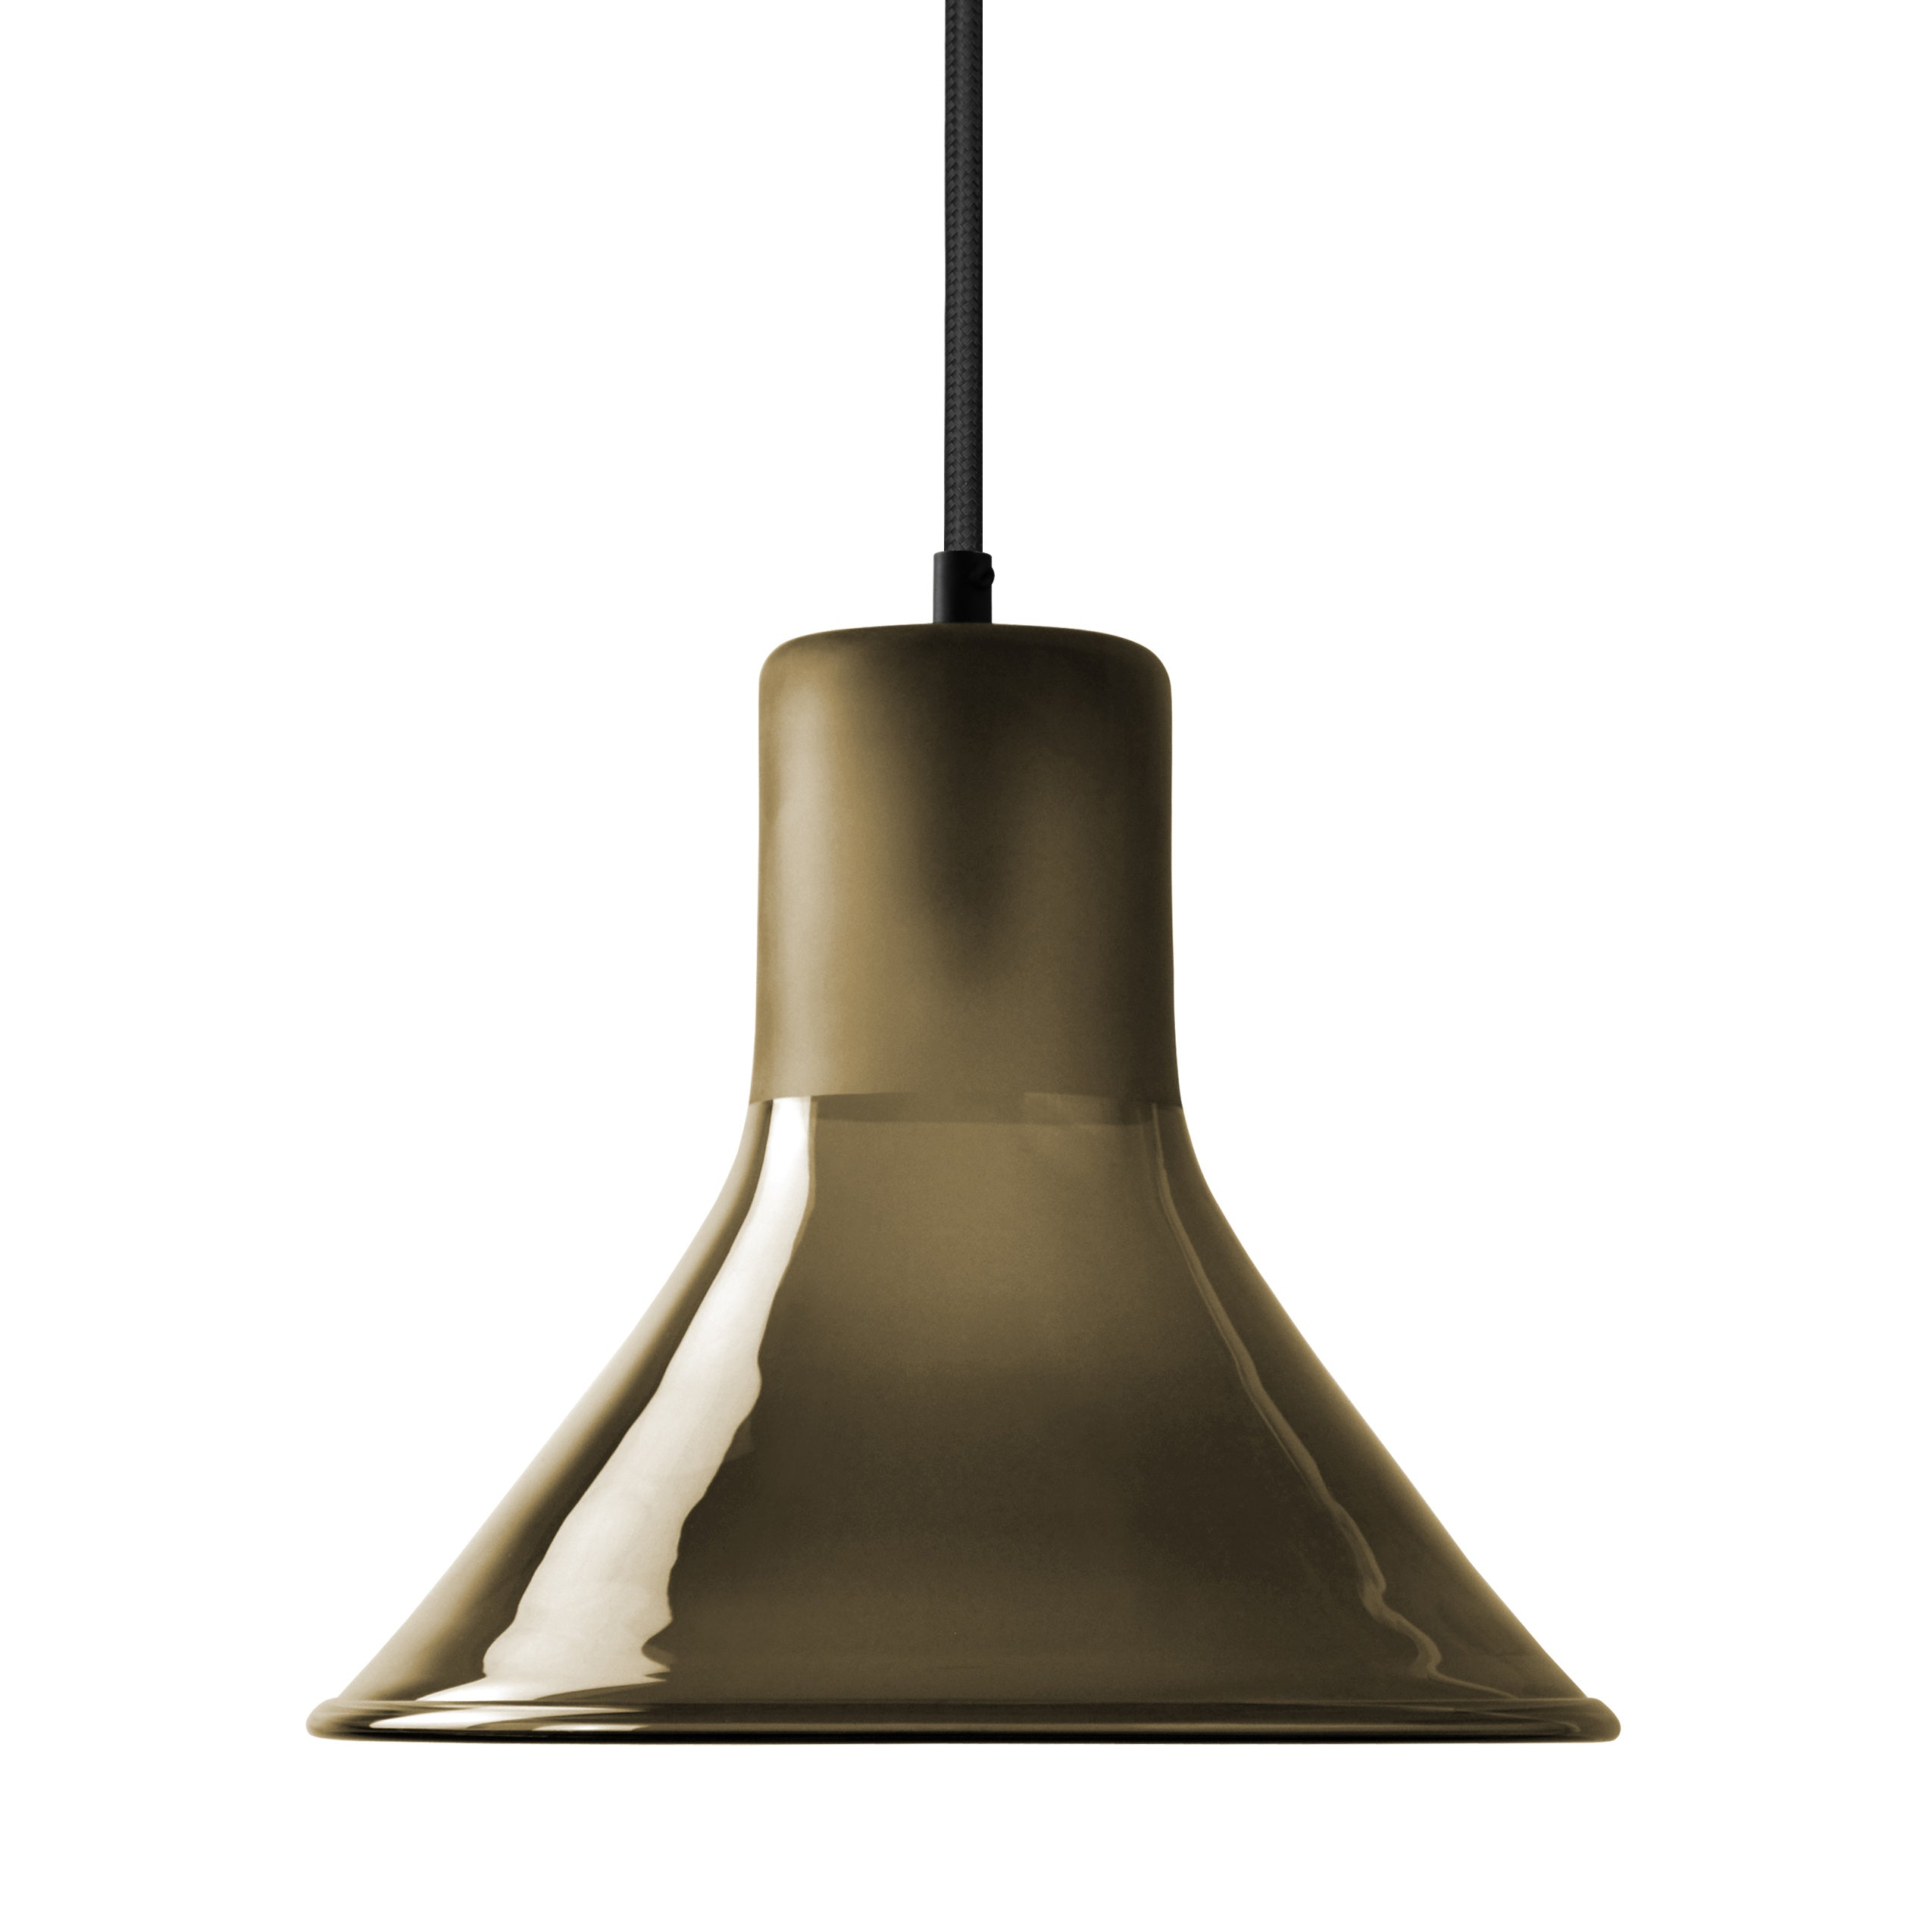 Mineheart Funnel glass pendant light in olive by Young & Battaglia from Warehouse Home